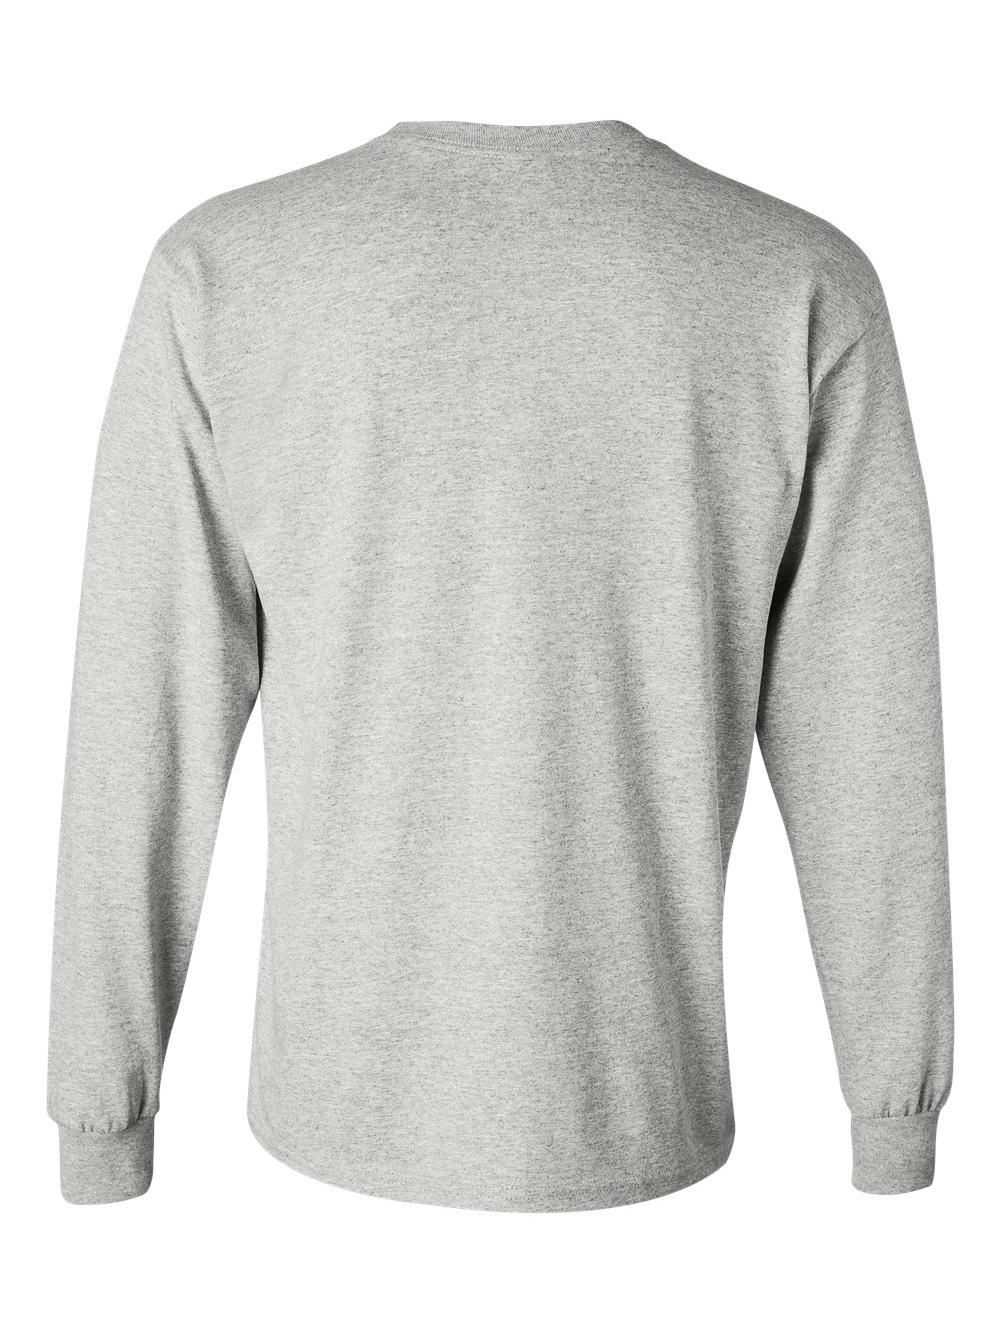 Gildan-Heavy-Cotton-Long-Sleeve-T-Shirt-5400 thumbnail 4